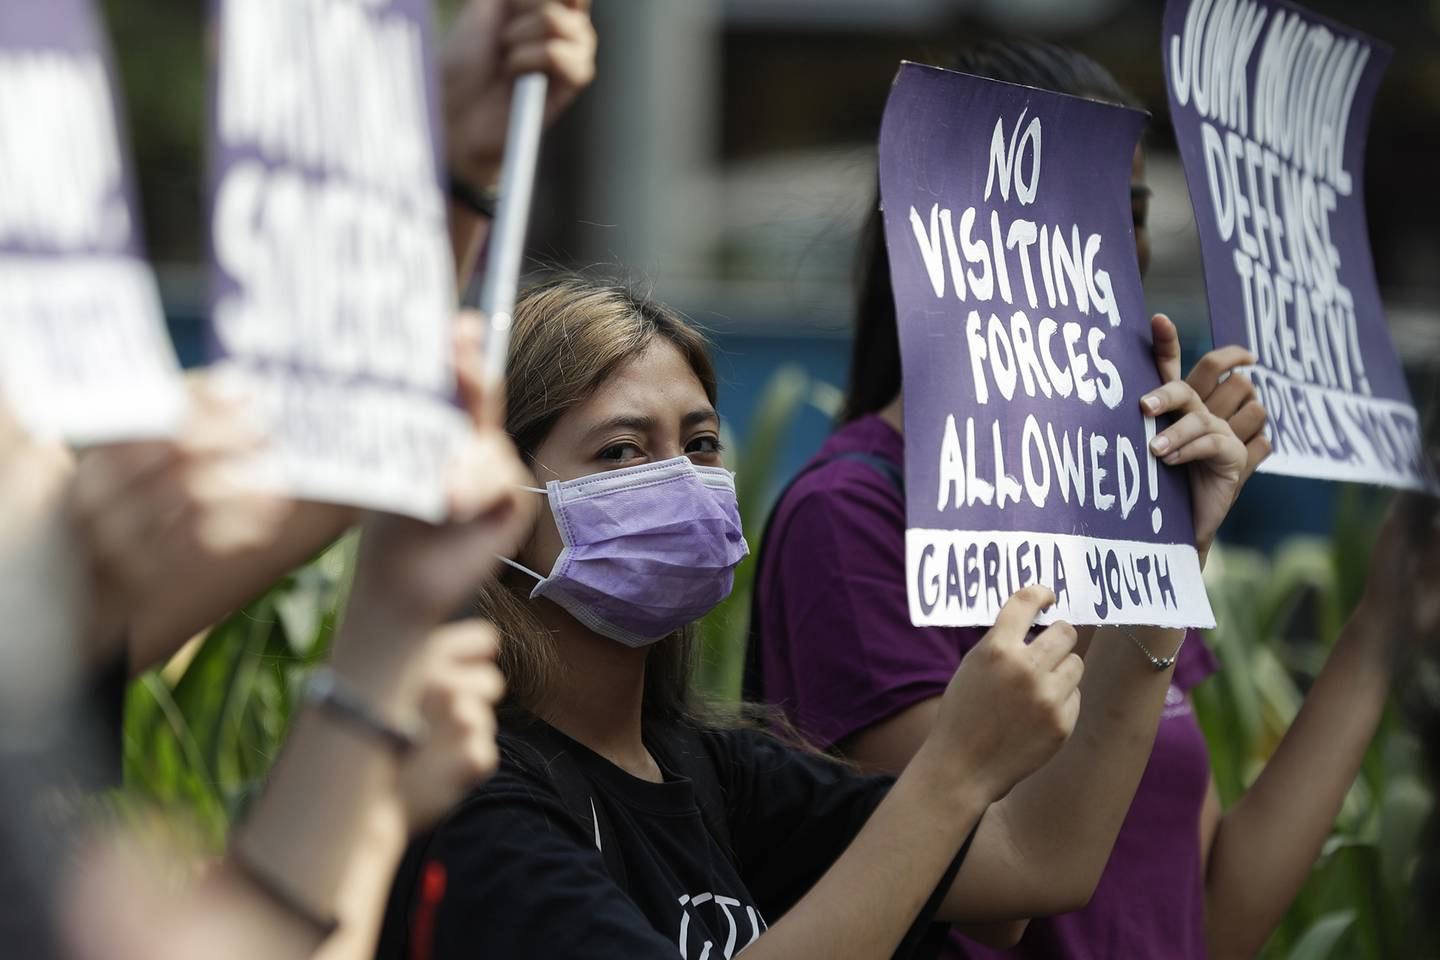 In this March 6, 2020, file photo, a woman protester wearing a protective mask holds a slogan during a rally outside the U.S. Embassy in Manila, Philippines, against the planned military exercises between the Philippines and U.S. under the Visiting Forces Agreement.